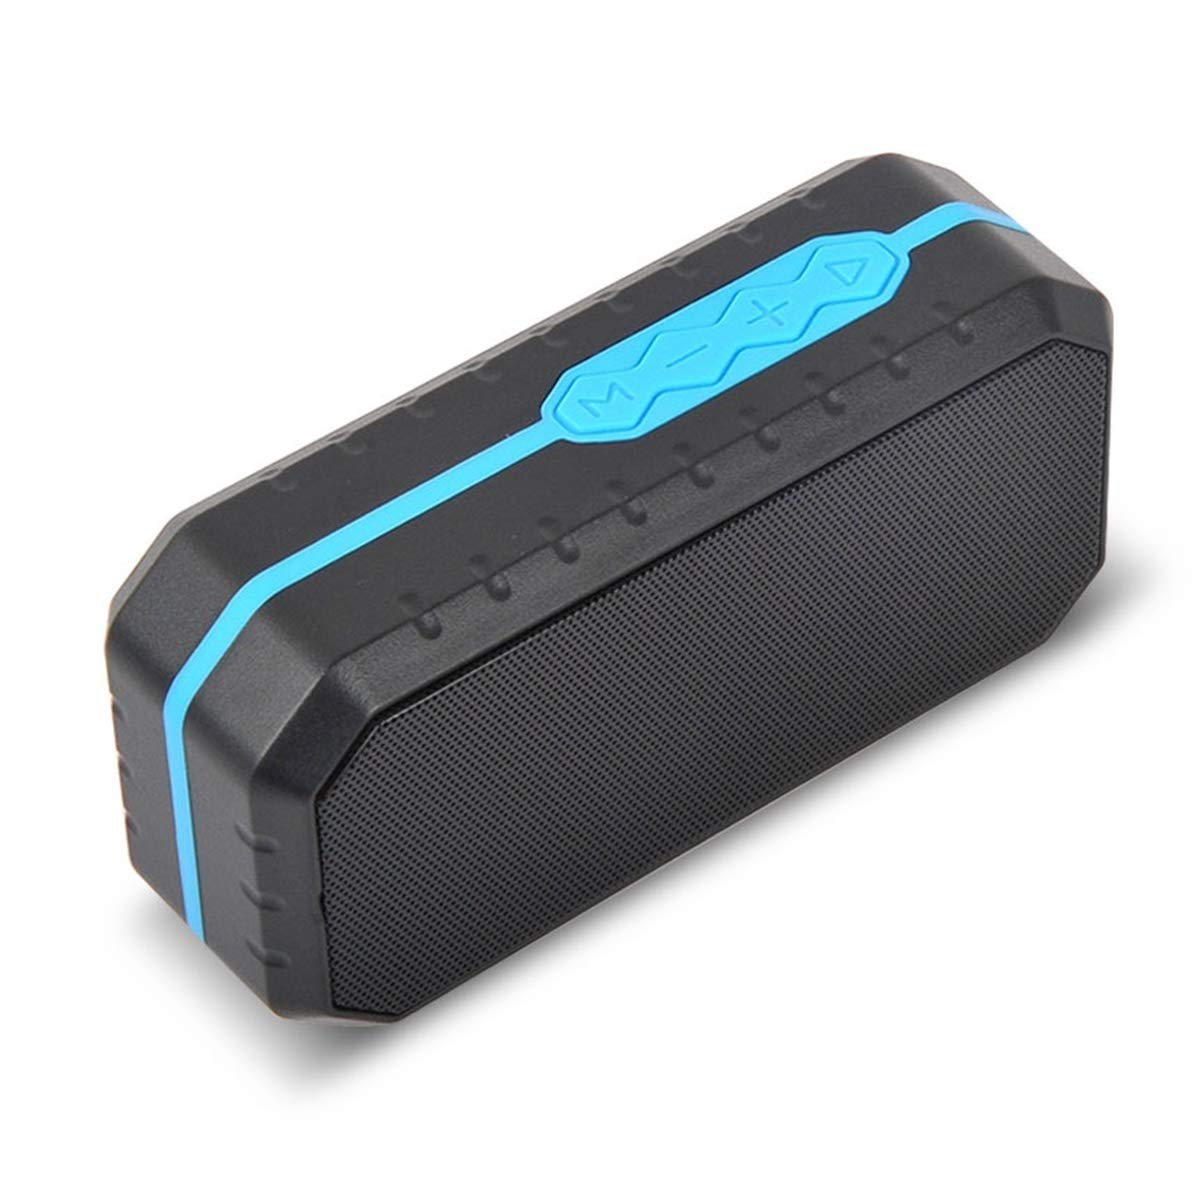 Brinonac Mini Portable Bluetooth Speakers,Waterproof Wireless Speakers with HD Stereo Sound,IP65 Waterproof,Built-in Mic,for Indoor and Outdoor